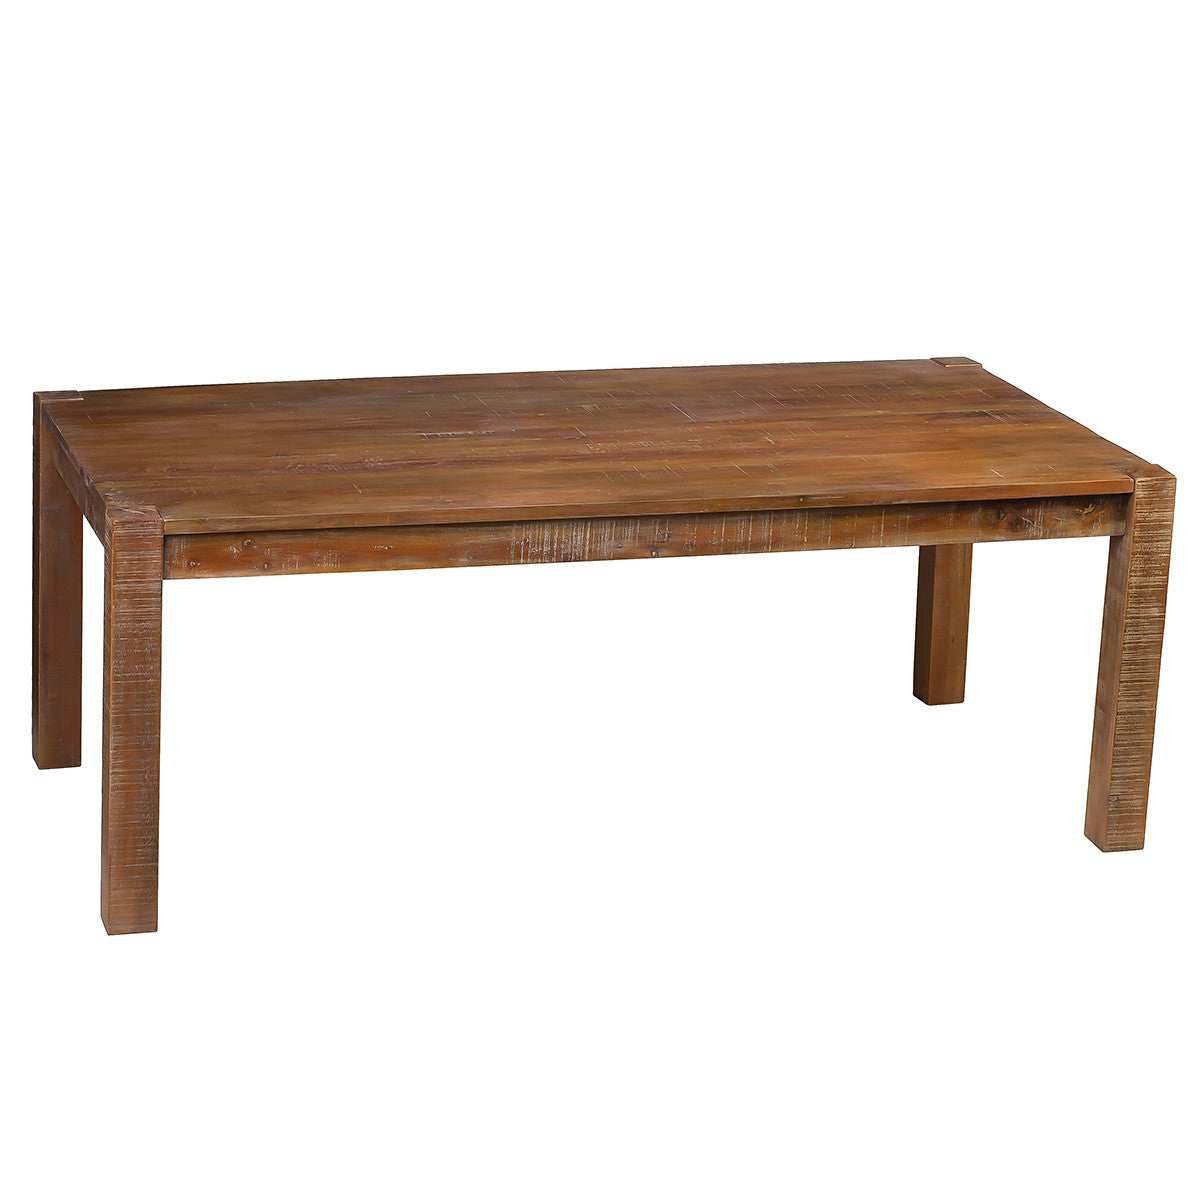 https://cdn.shopify.com/s/files/1/0237/4165/products/211_-_Modern_Rustic_Dining_Table_Large_-_Rustic_Gray_Wash_1.jpg?v=1493219859